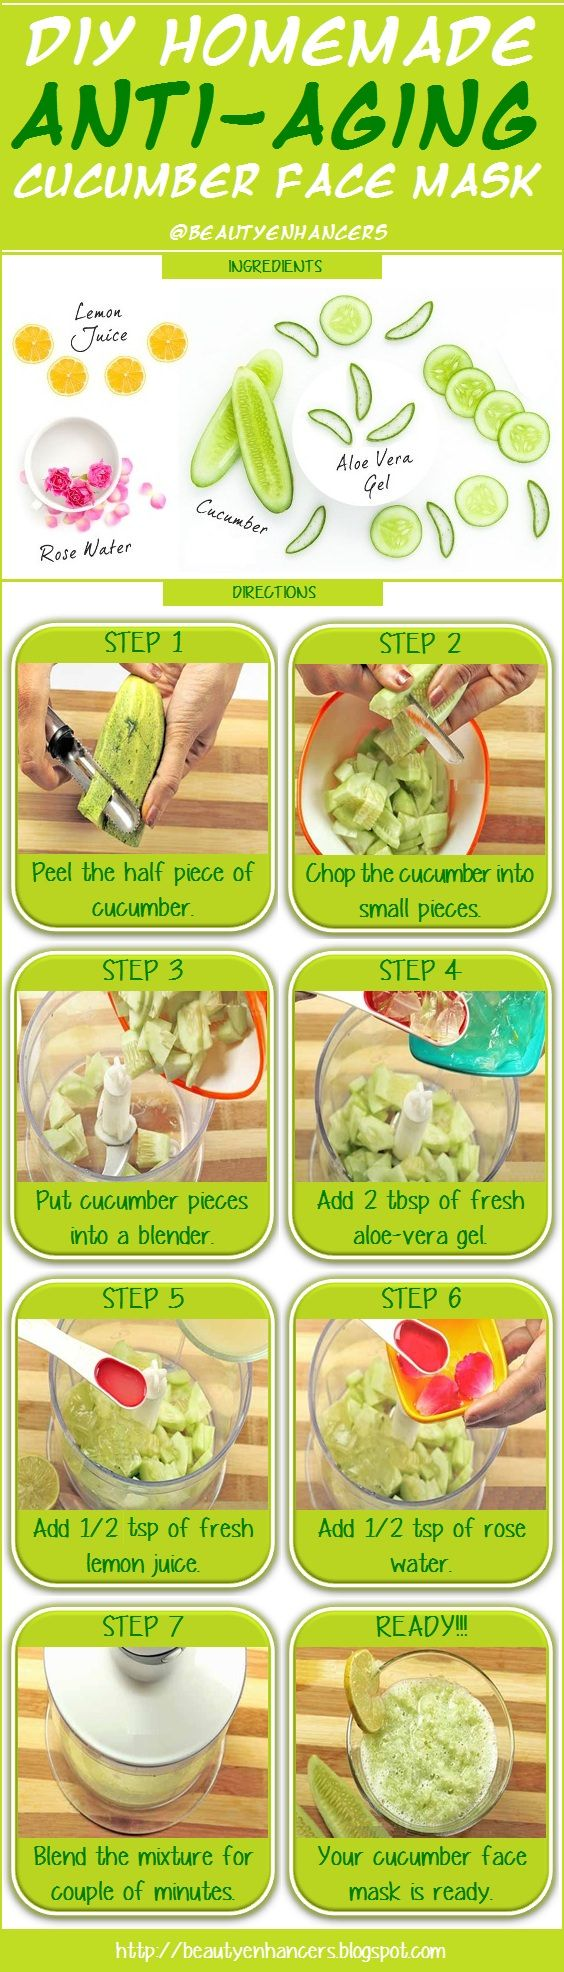 DIY Homemade Anti-Aging Cucumber Face Mask [INFOGRAPHIC]